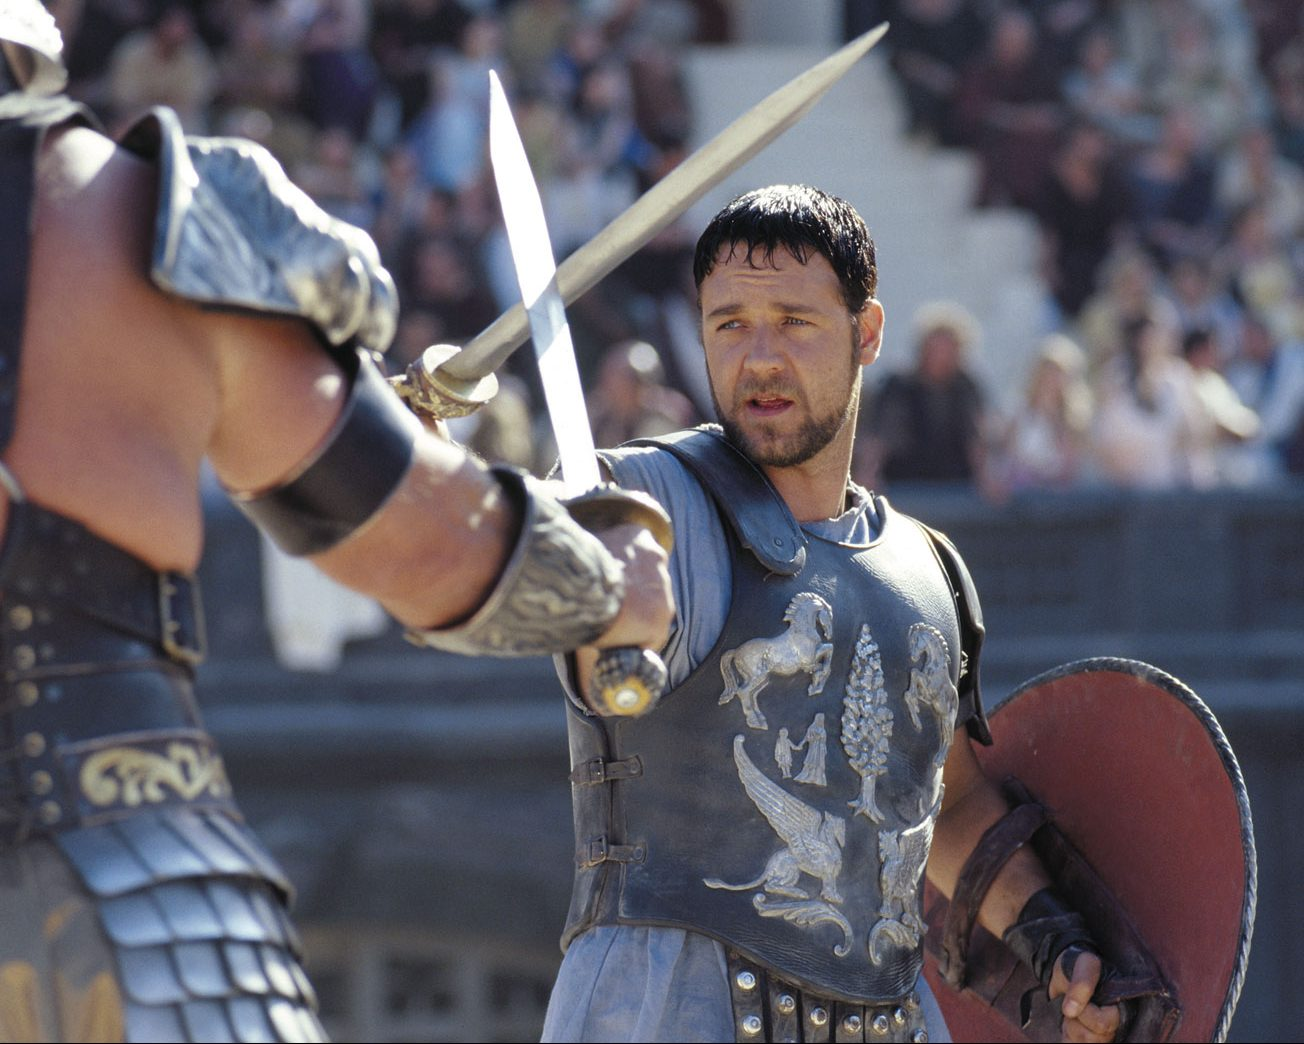 Russell Crowe Gladiator e1605783277305 25 Things You Probably Didn't Know About Action Movie Legend Dolph Lundgren